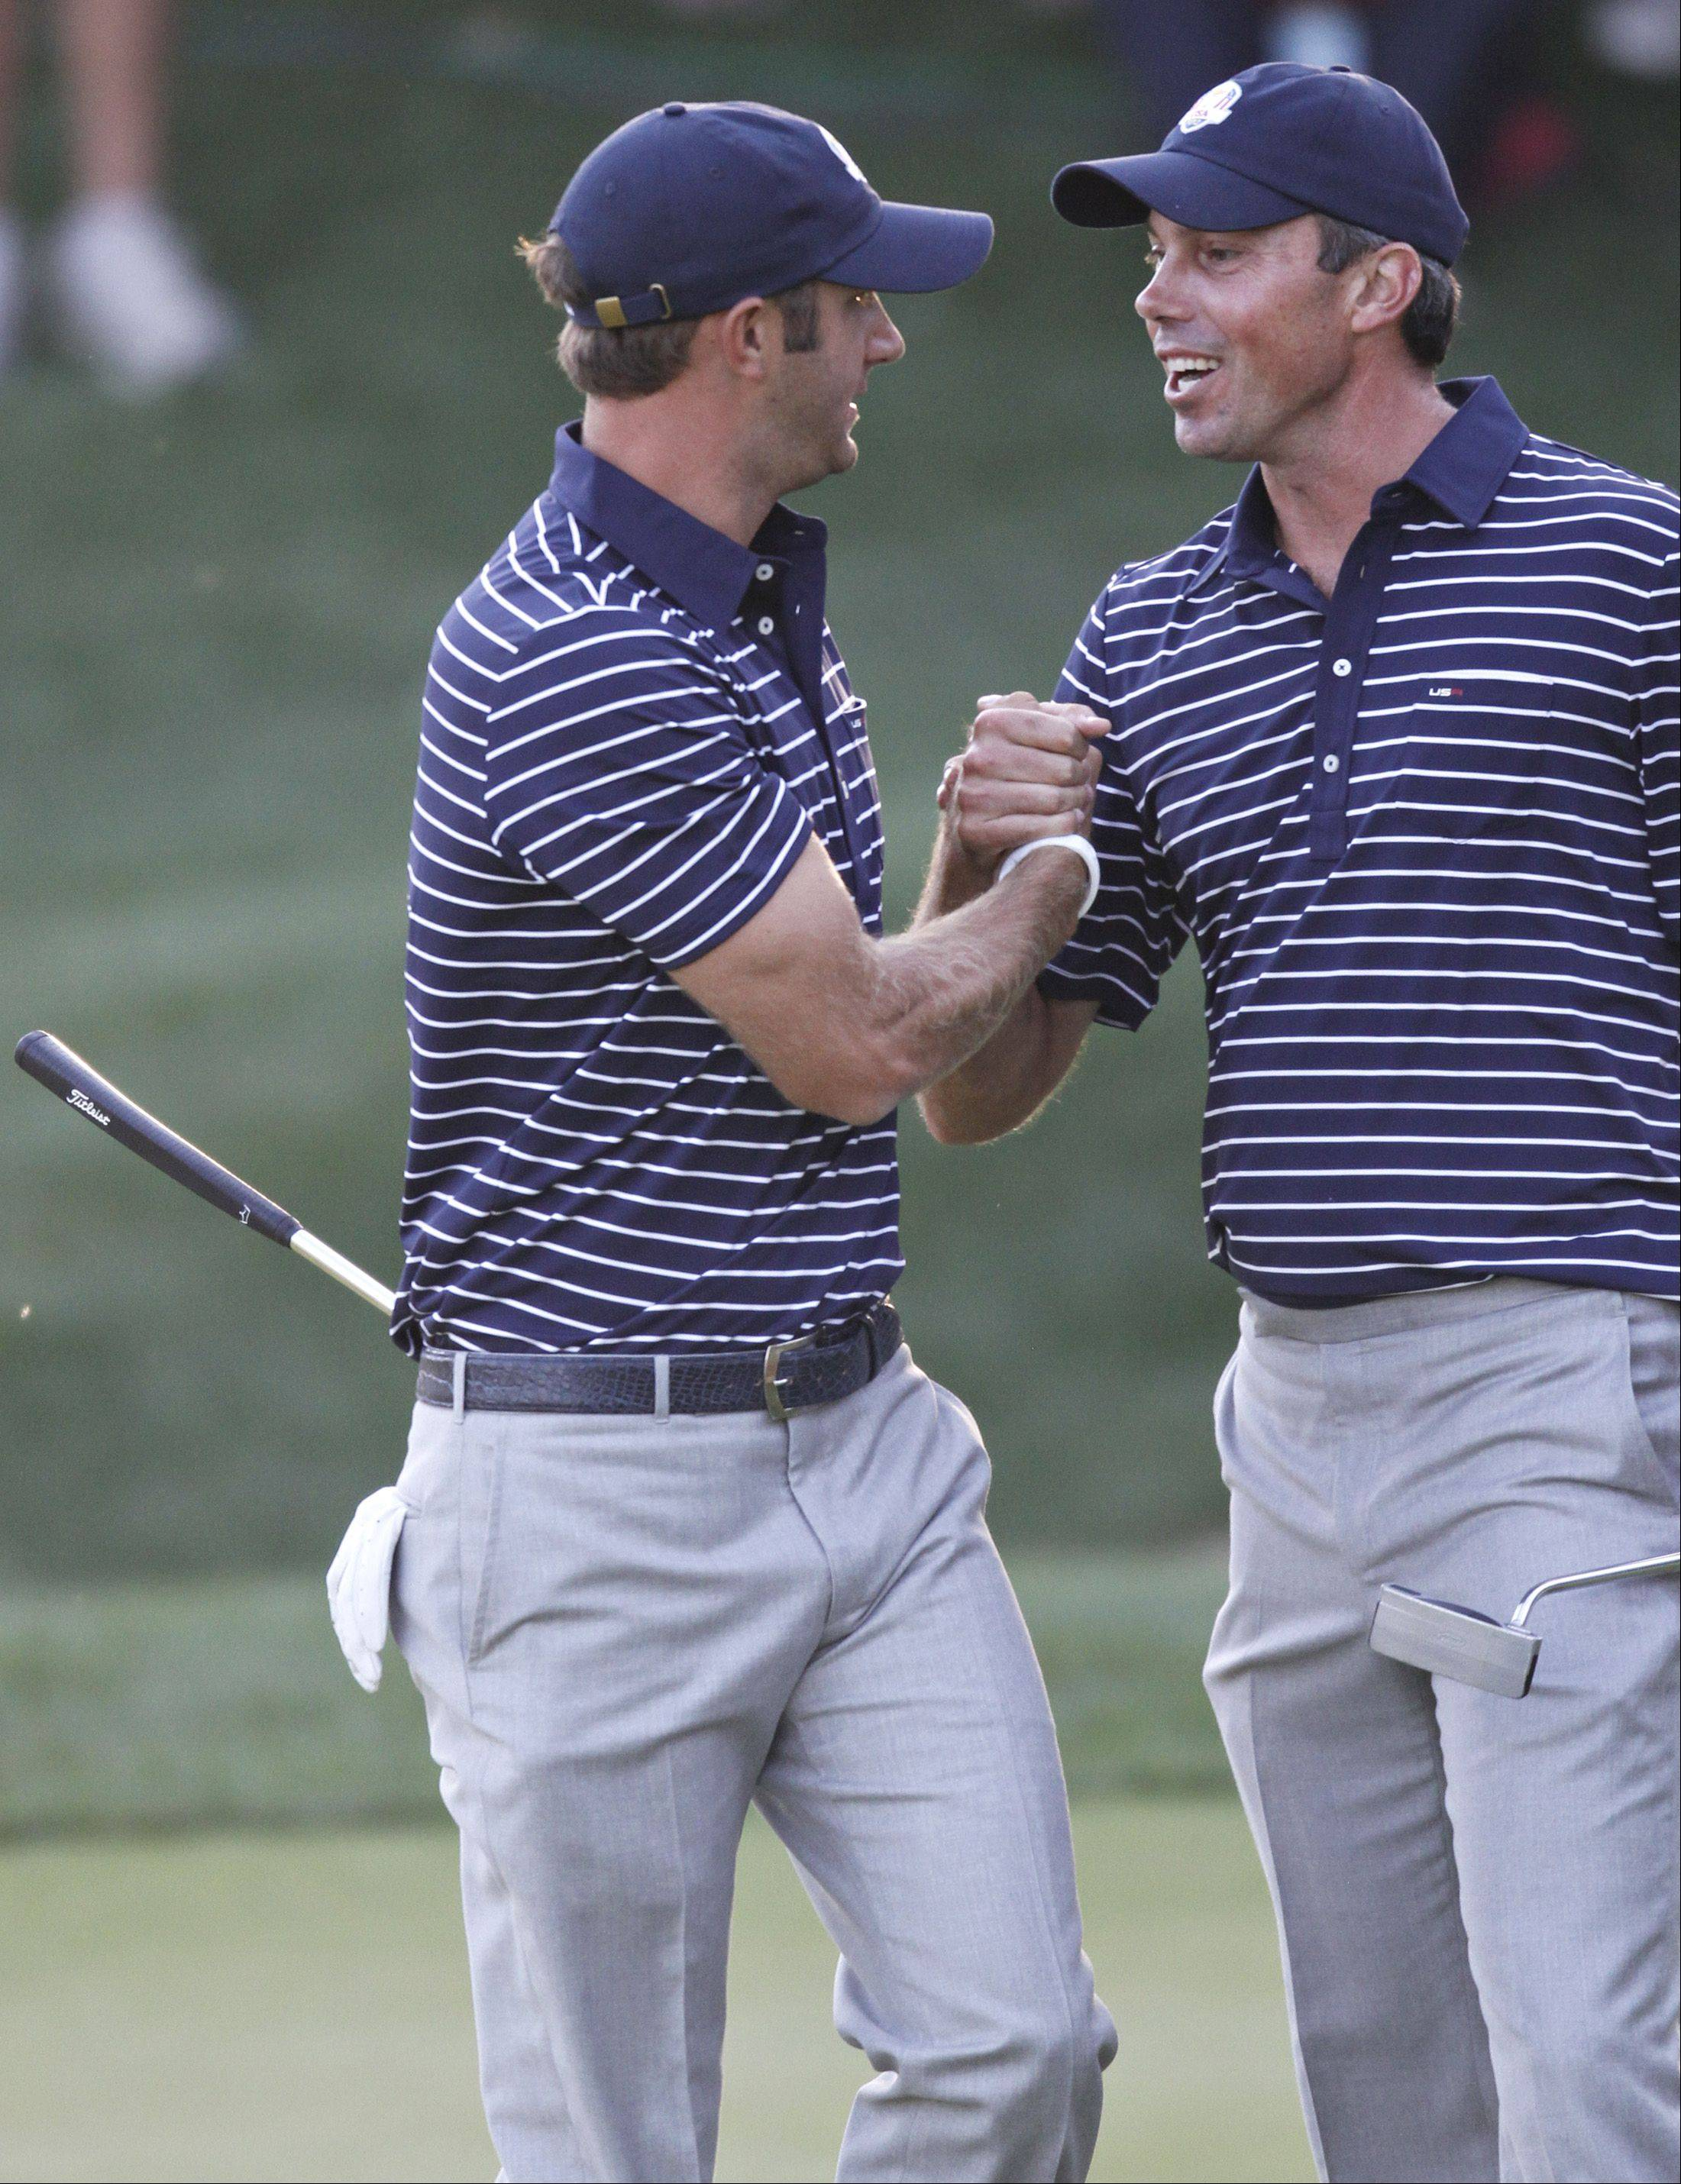 Teammates Dustin Johnson and Matt Kuchar celebrate on 17 Saturday.